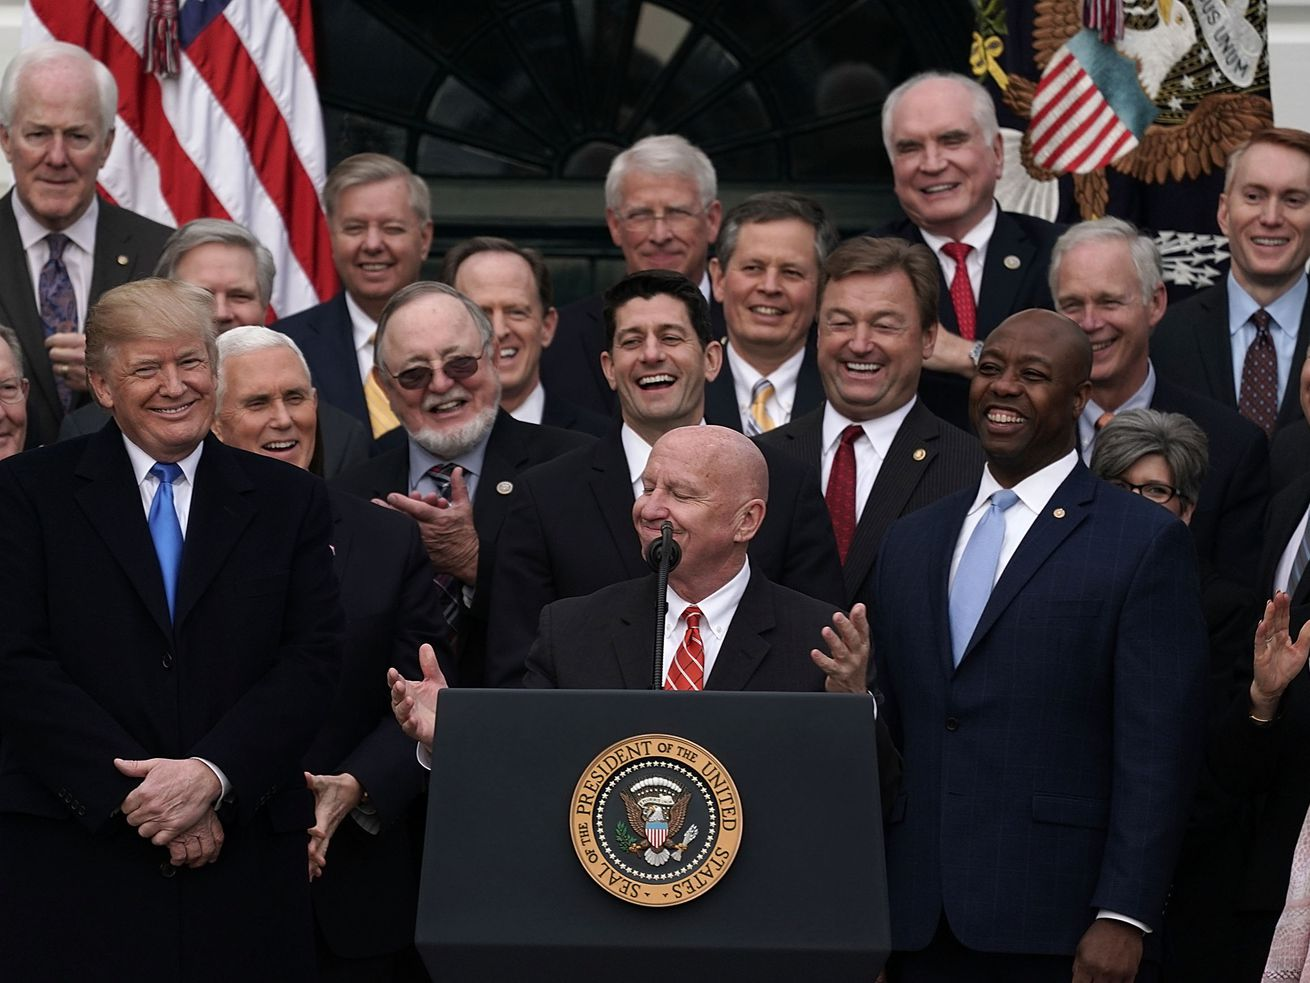 House Ways and Means Committee Chair Kevin Brady speaks at a White House celebration of the GOP's passage of its tax cut bill in December 2017.